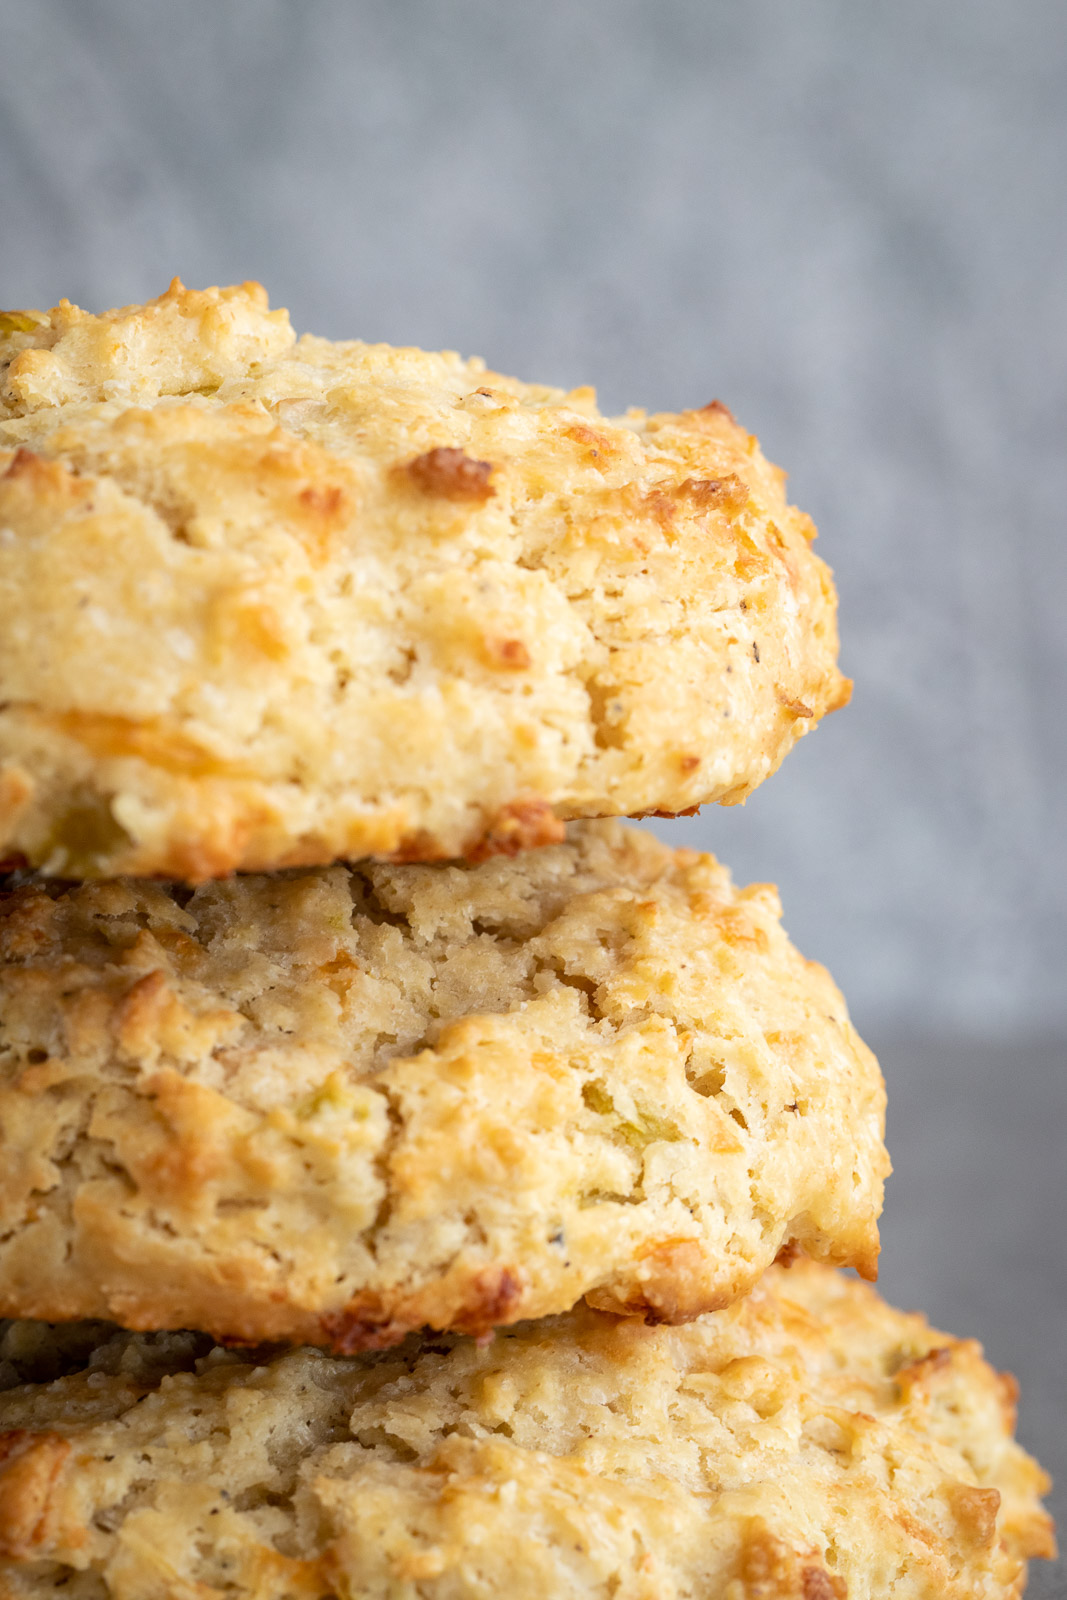 Green Chili and Jack Drop biscuits in a stack.